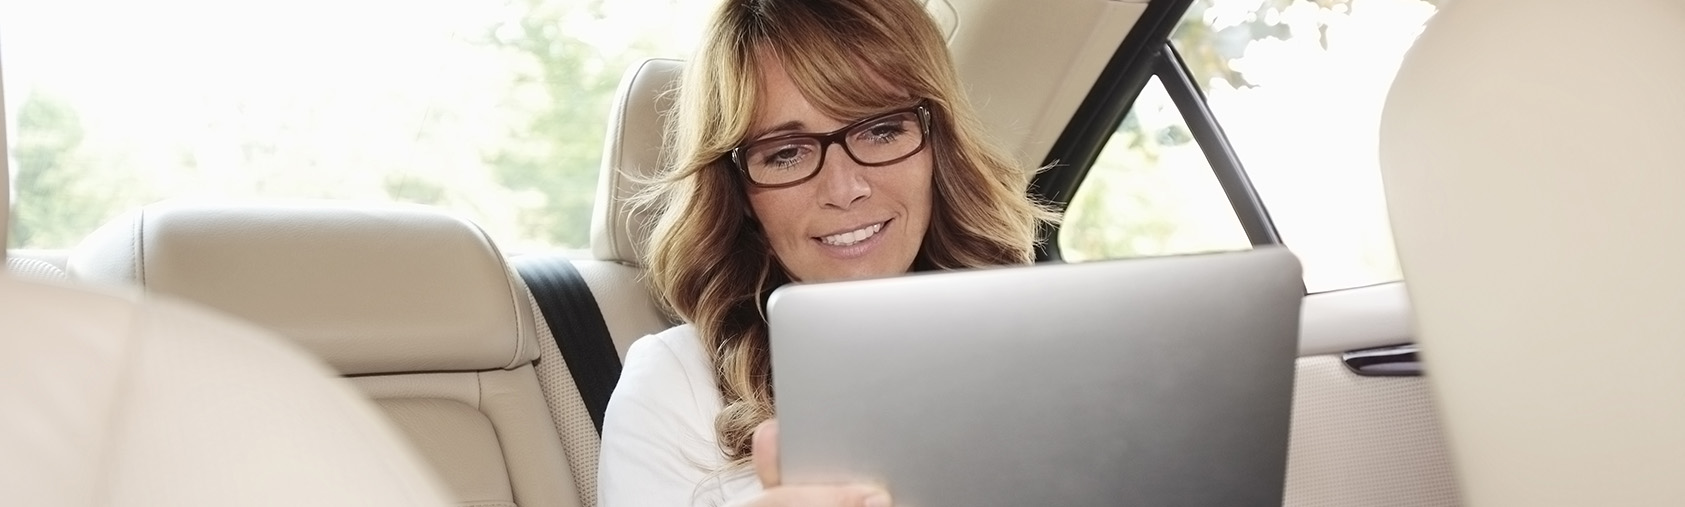 woman in backseat of car on tablet